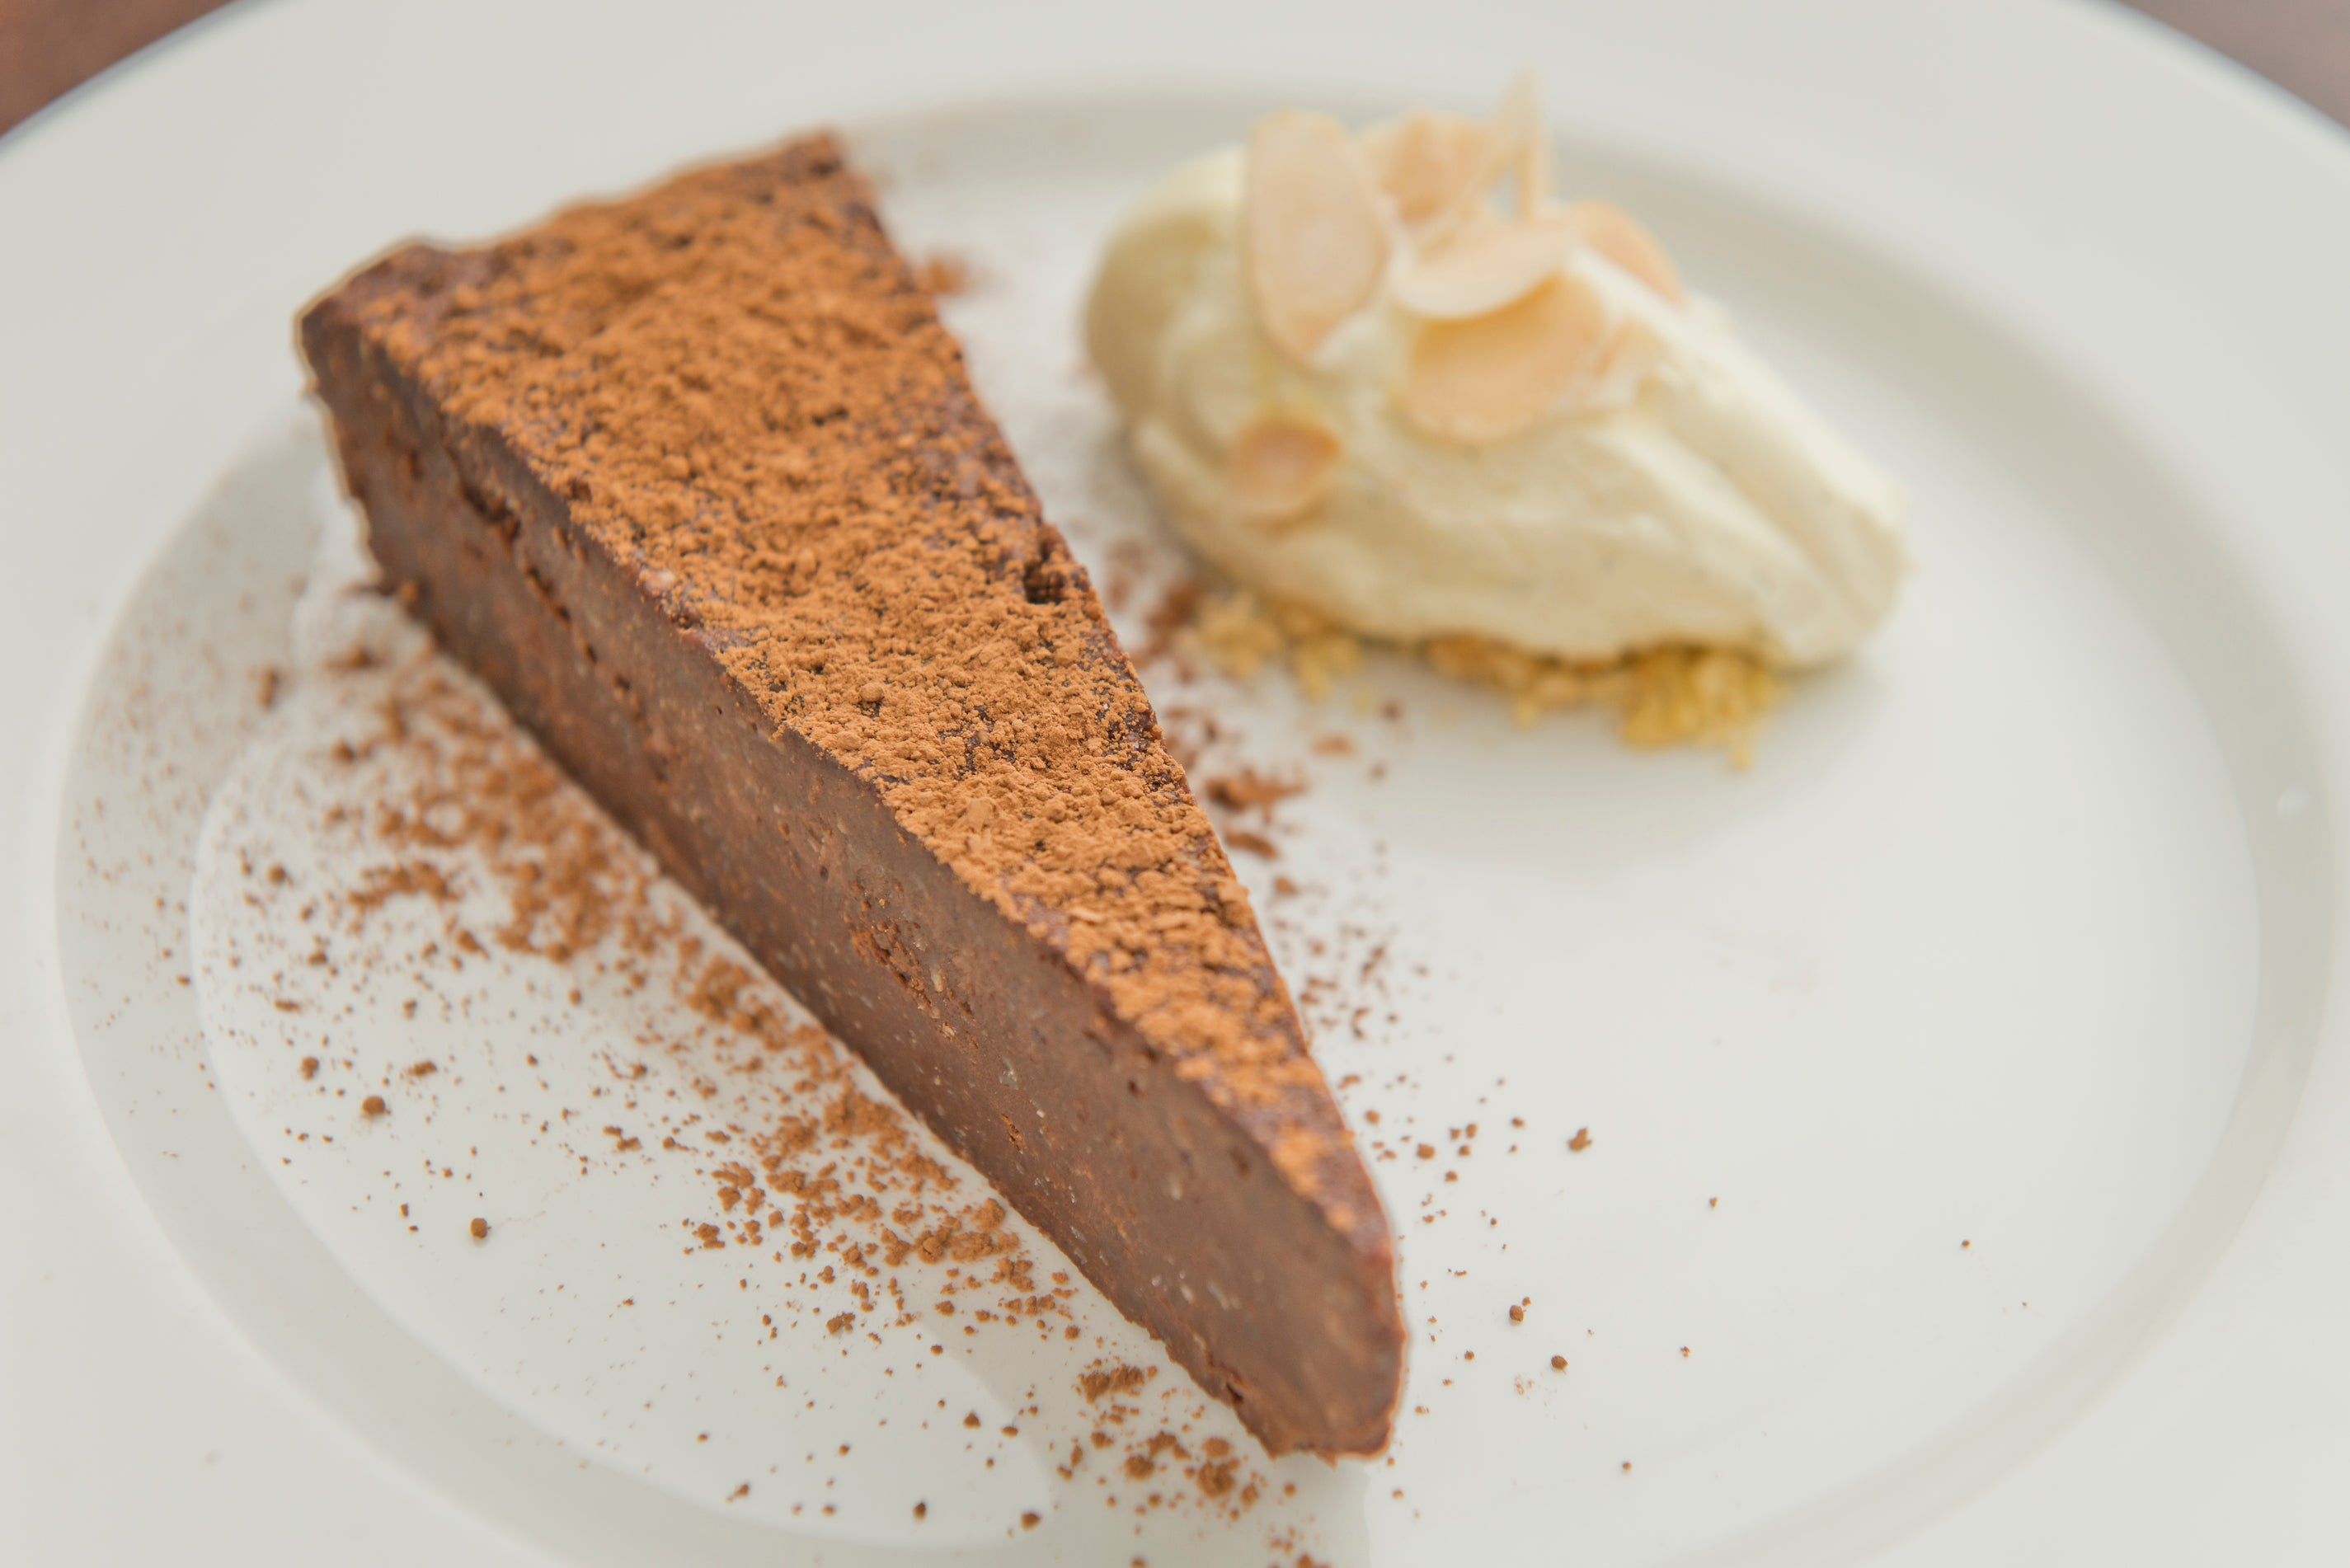 Chocolate & almond torte with crème fraiche (V) (GF)